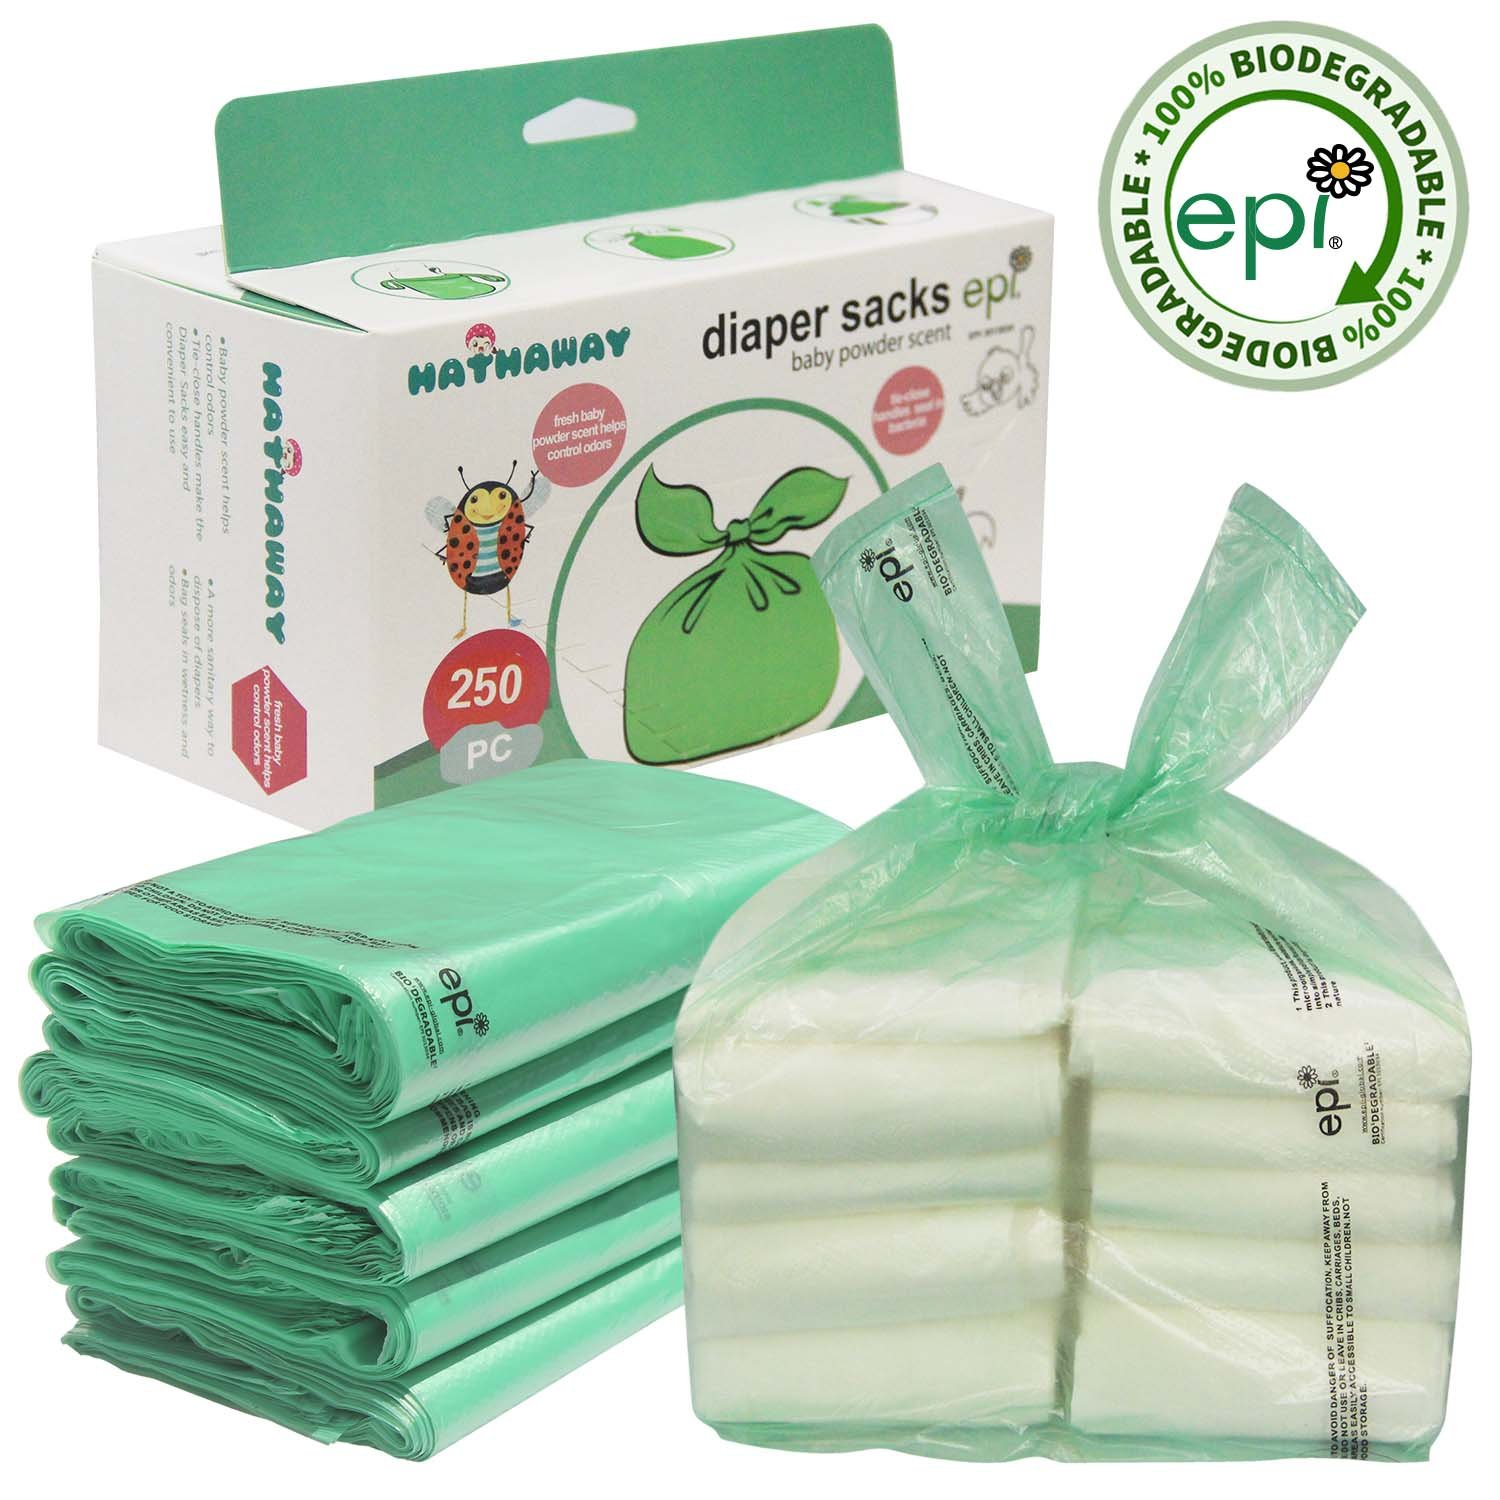 Easy-Tie Baby Disposable Diaper Sacks/Diaper Bags with Baby Powder Scent, 250 Count TOMOTO